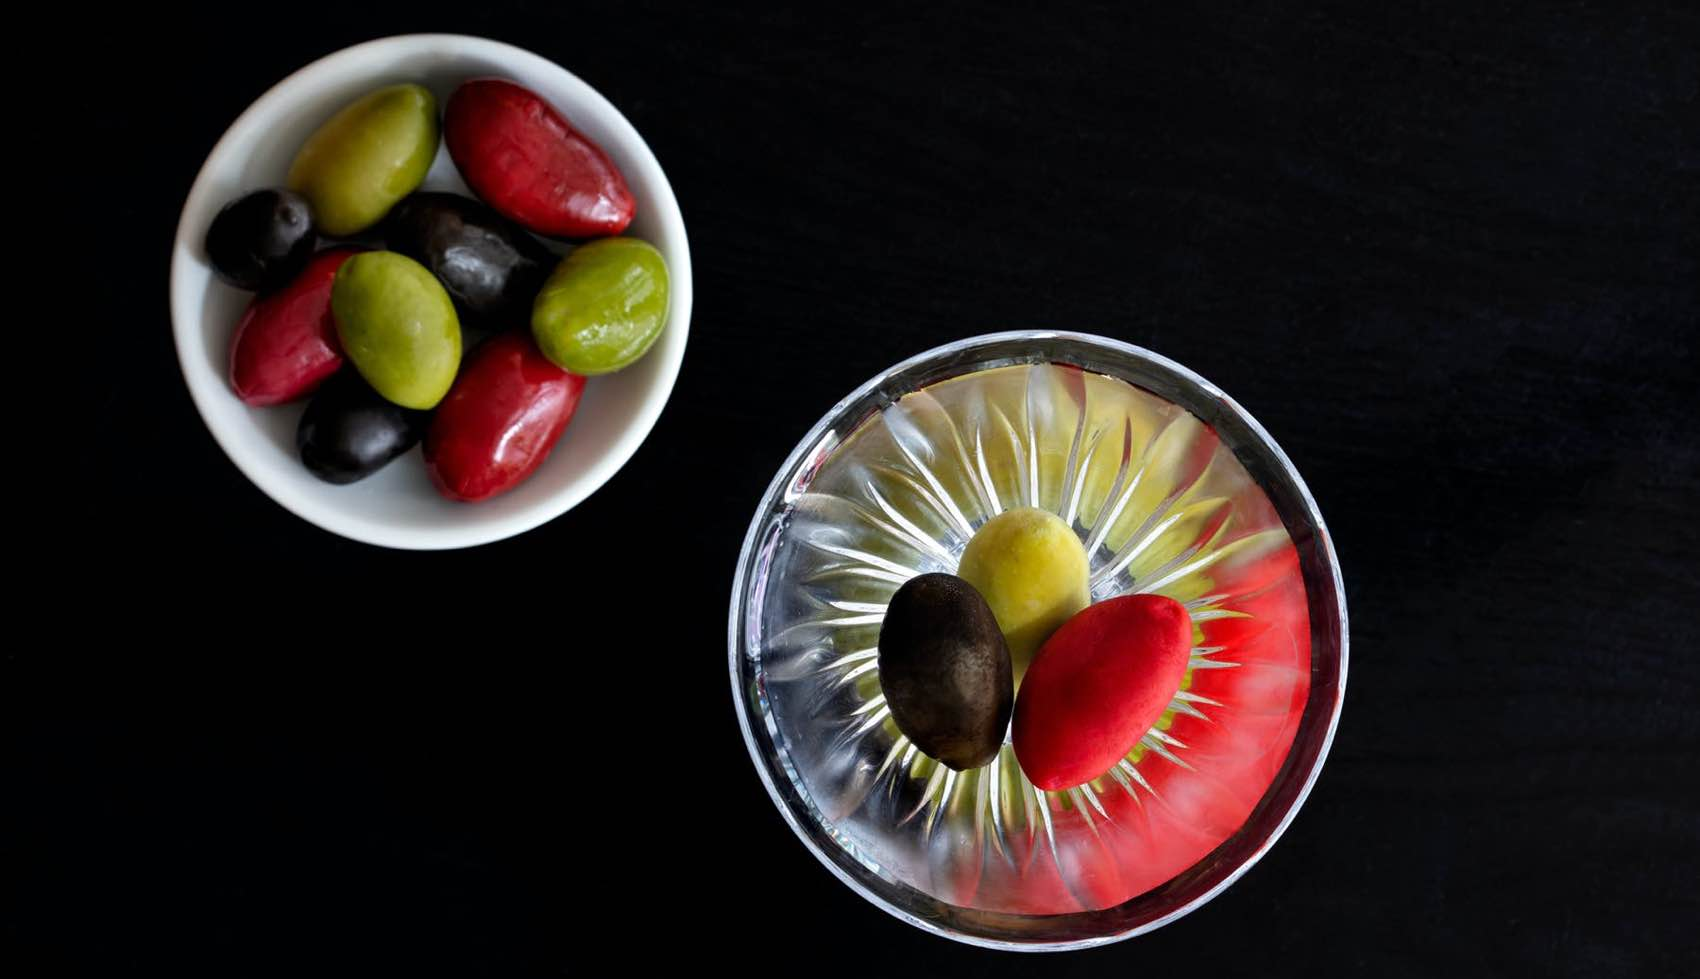 Italian style: The art of Negroni - served with olives